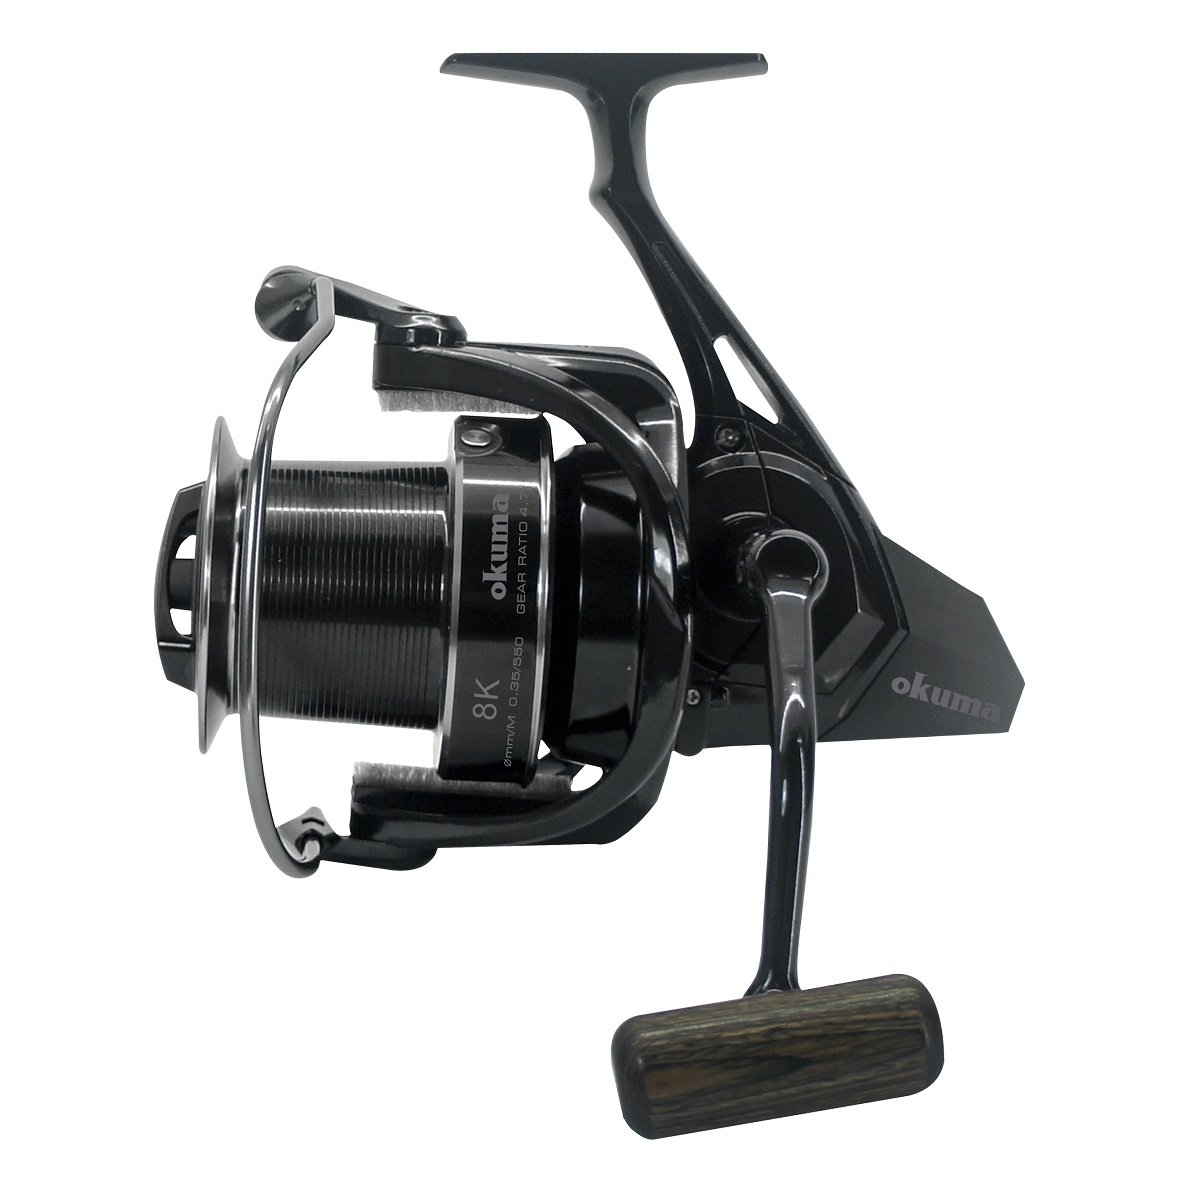 8K Spinning Reel - Okuma 8k Spinning Reel-Long casting spinning reel-Precision worm shaft transmission system-Slow oscillation system